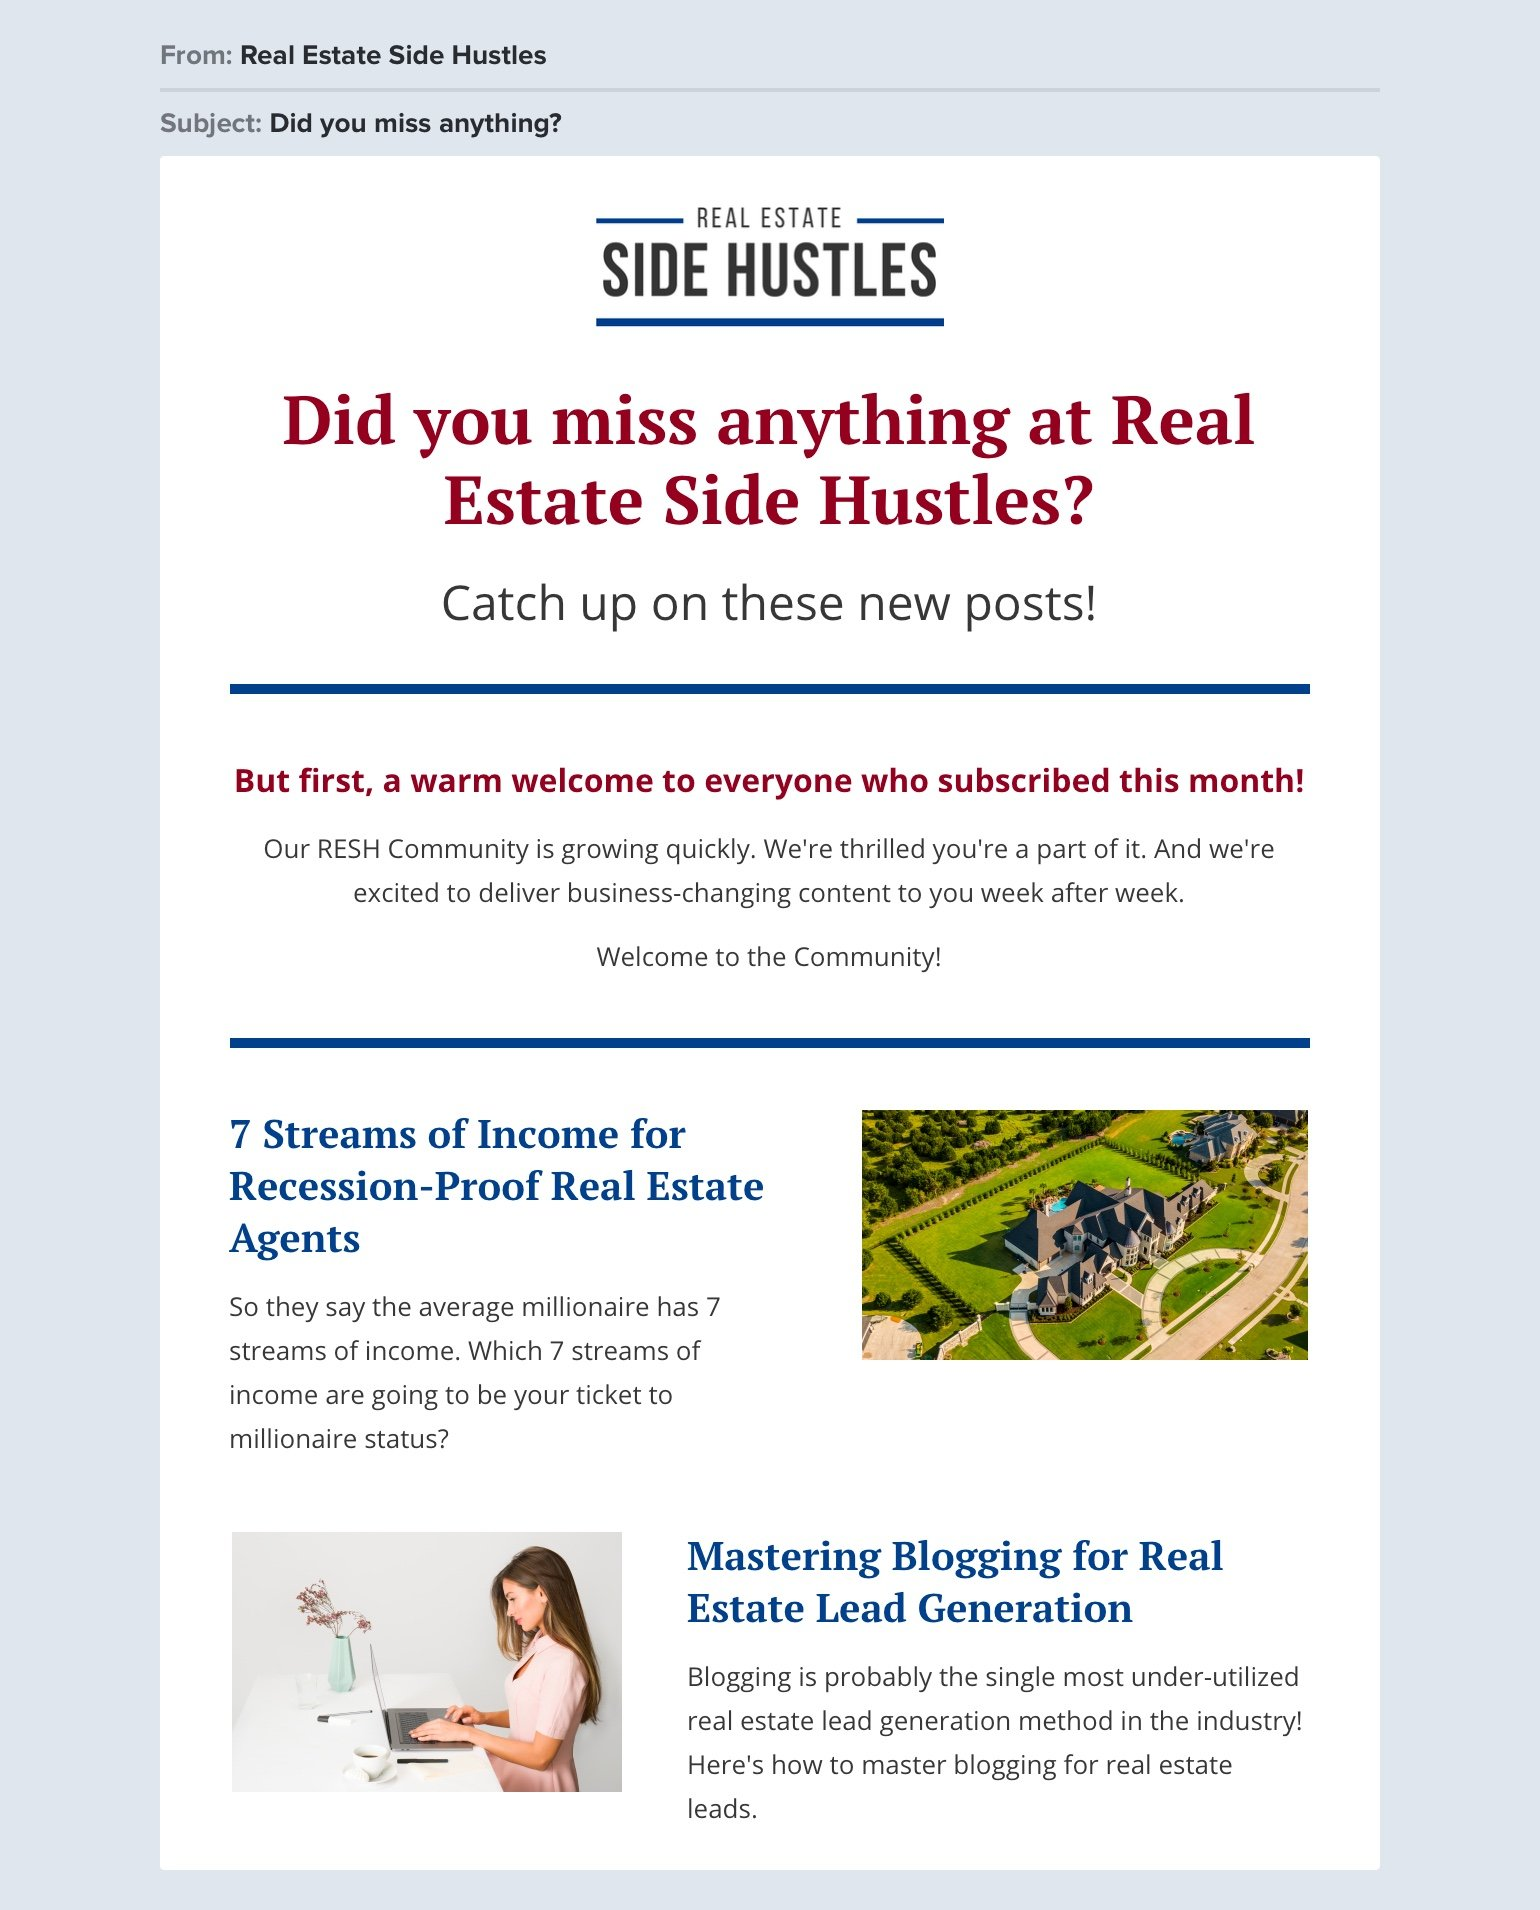 Real Estate Side Hustles welcome email example